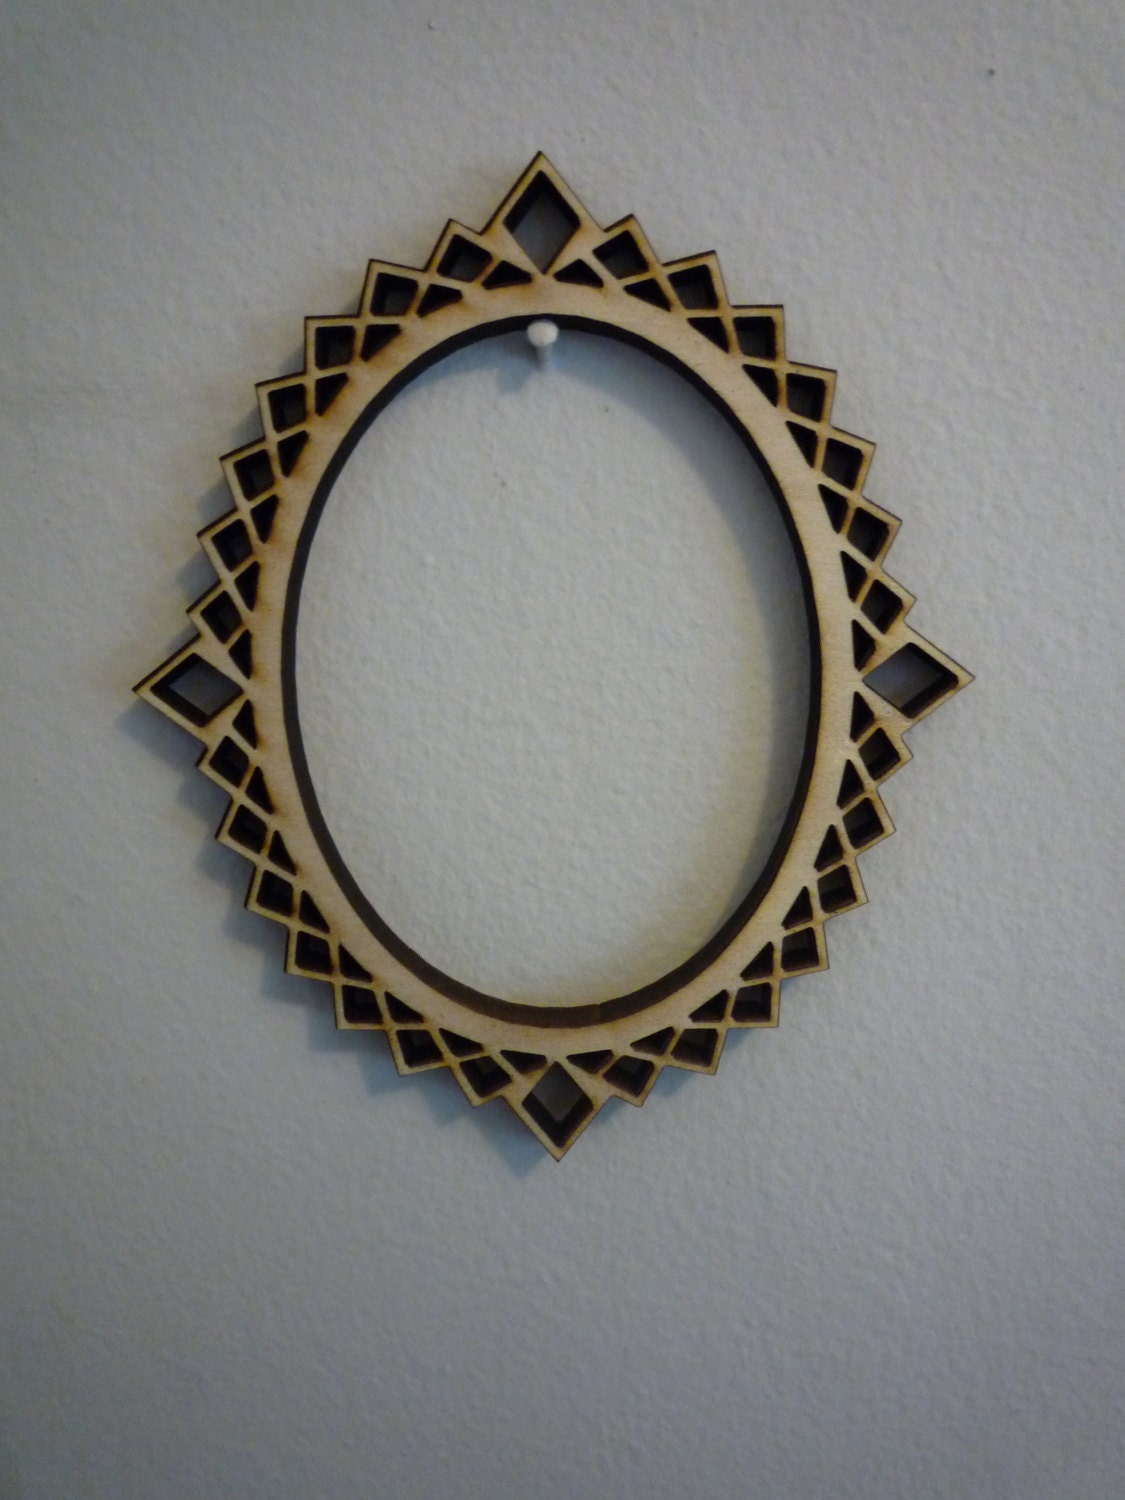 Decorative Oval Laser Cut Picture Frame from HMCrafters on Etsy Studio